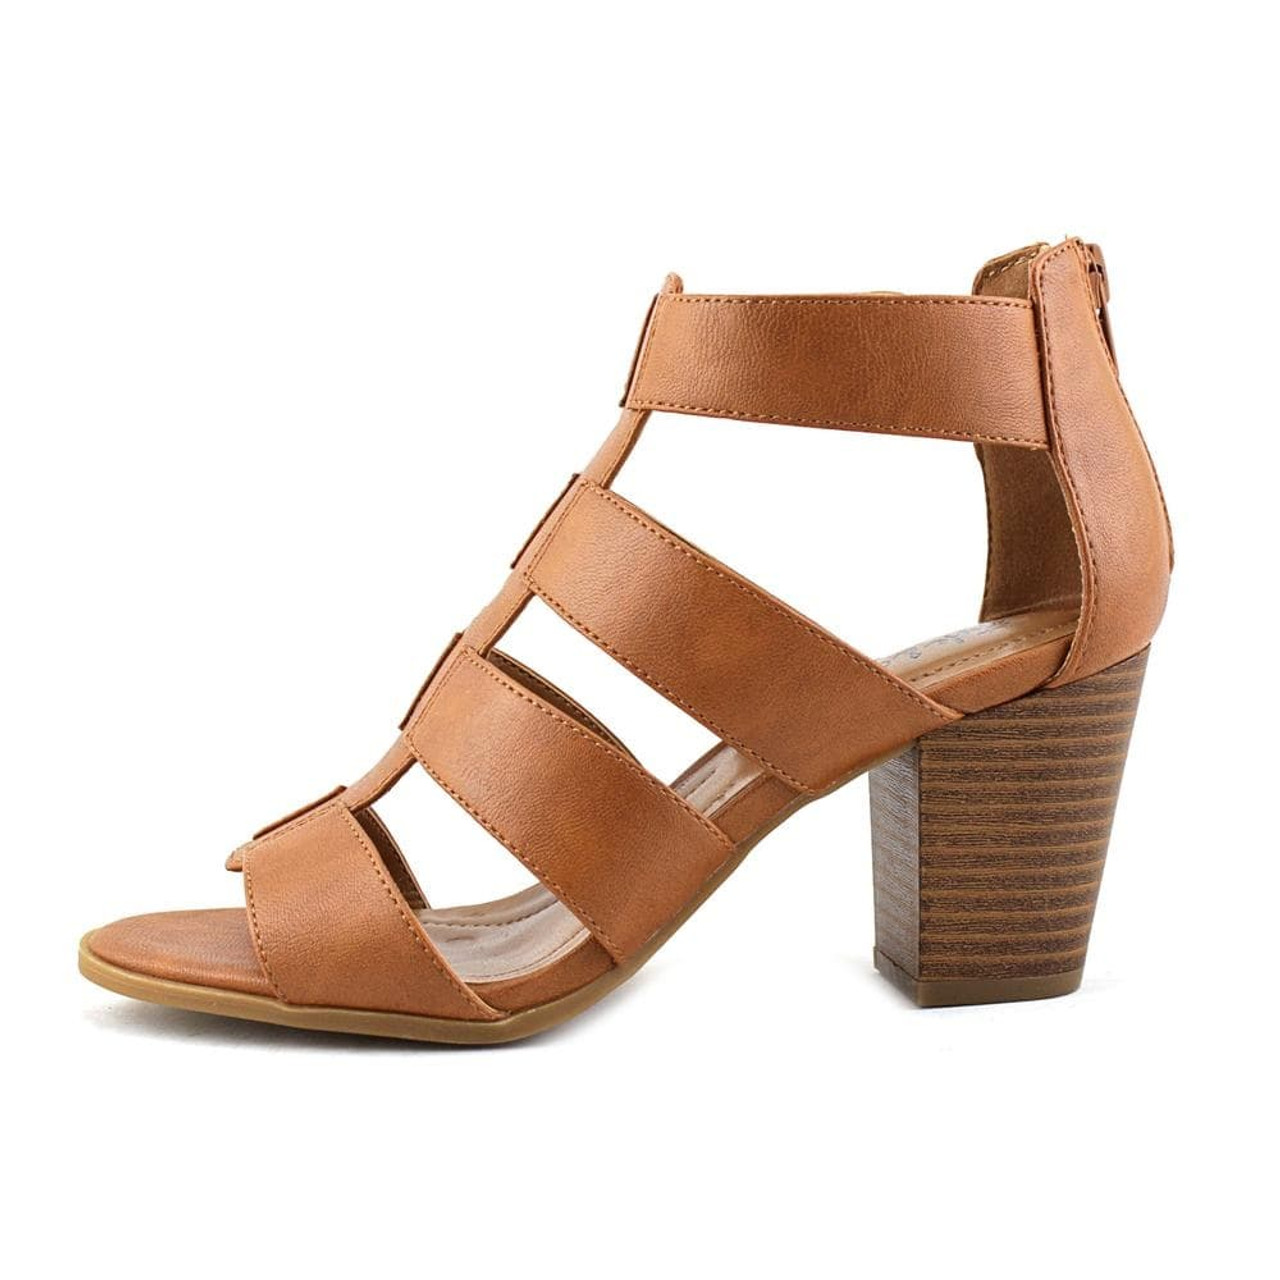 546e32ba84e11 Style & Co. Womens janinaa Leather Open Toe Casual Strappy  Sandals~pp-15088402